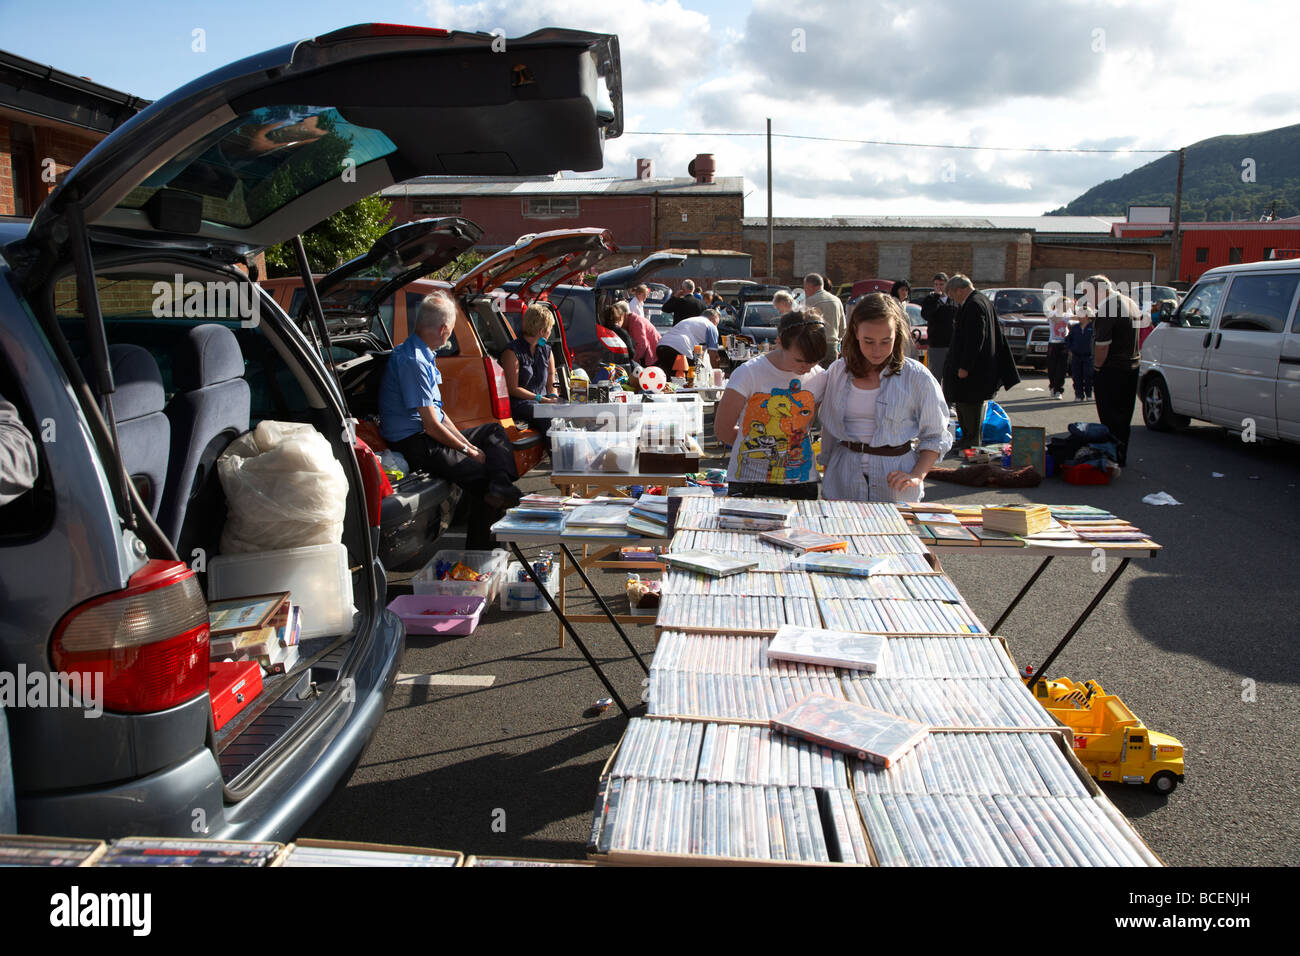 stalls with people browsing at a busy car boot sale in newtownabbey northern ireland uk - Stock Image